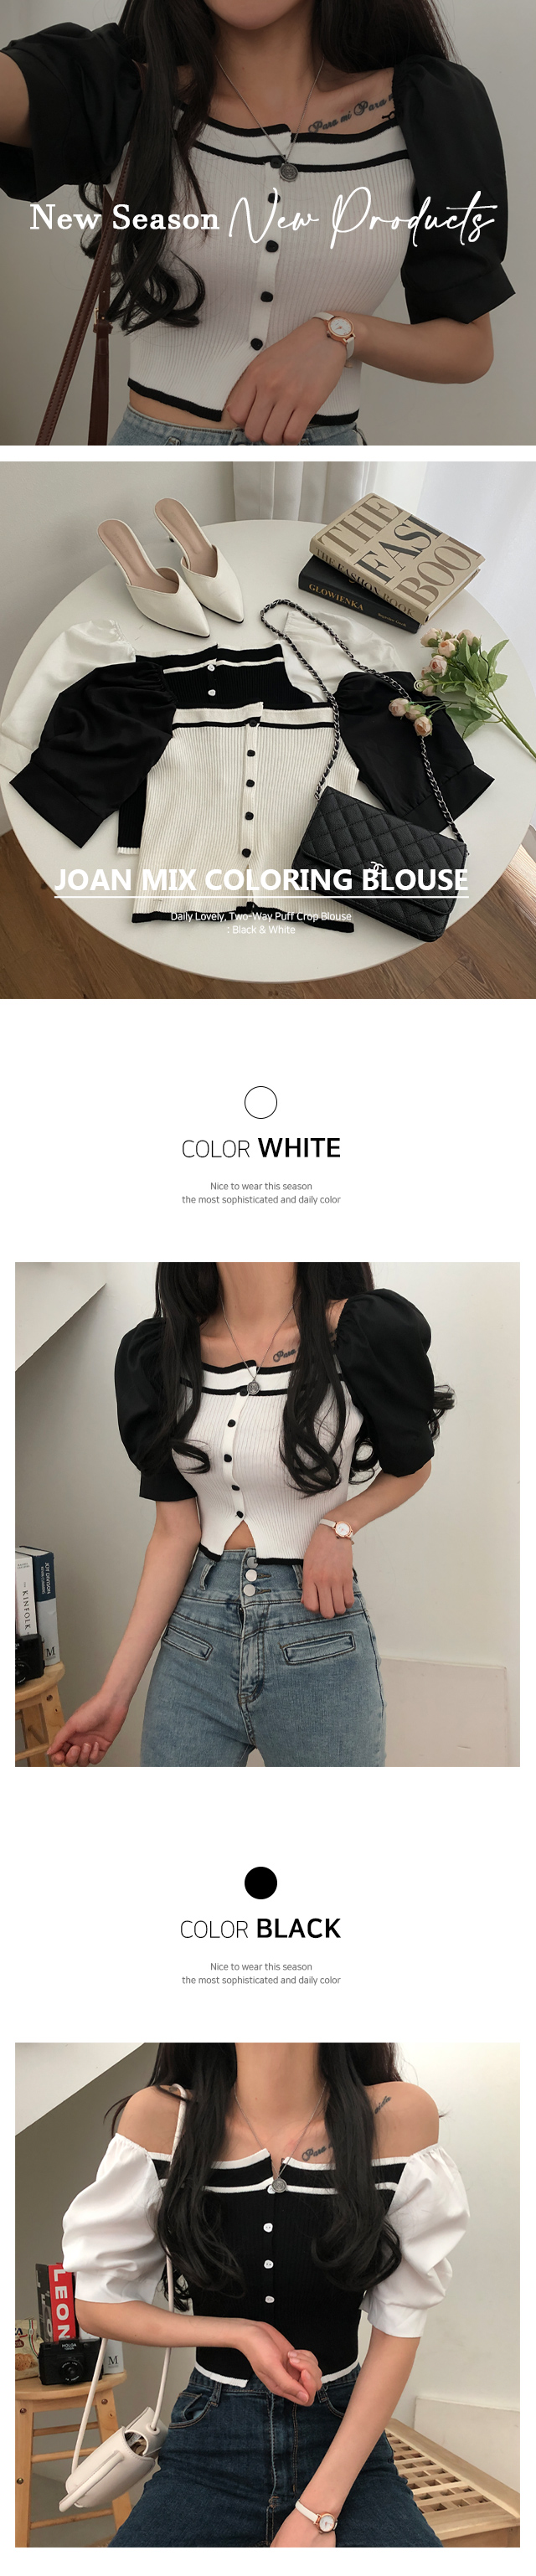 Joan mix color matching short sleeve blouse